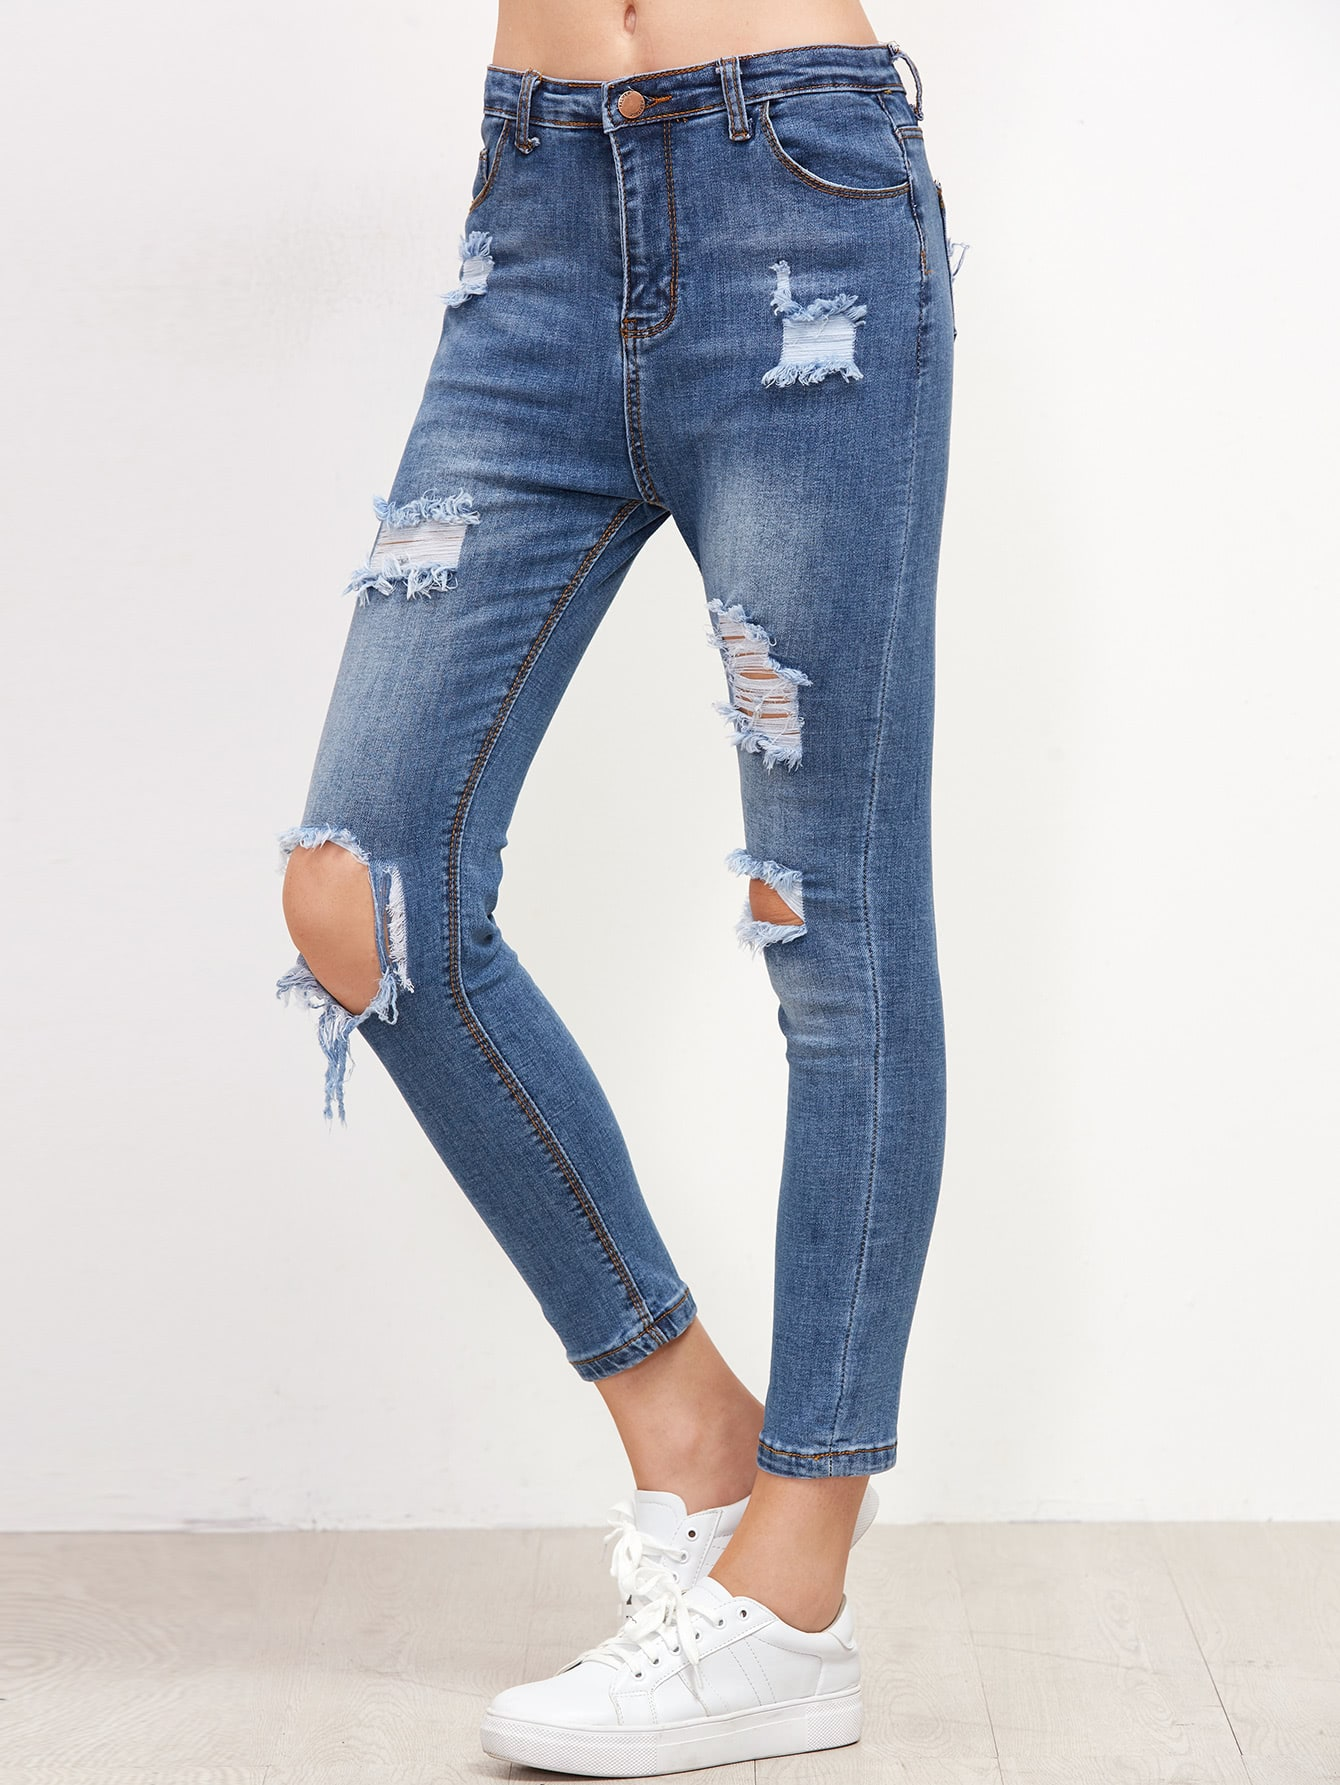 Blue Bleach Wash Ripped Ankle JeansBlue Bleach Wash Ripped Ankle Jeans<br><br>color: Blue<br>size: L,M,S,XL